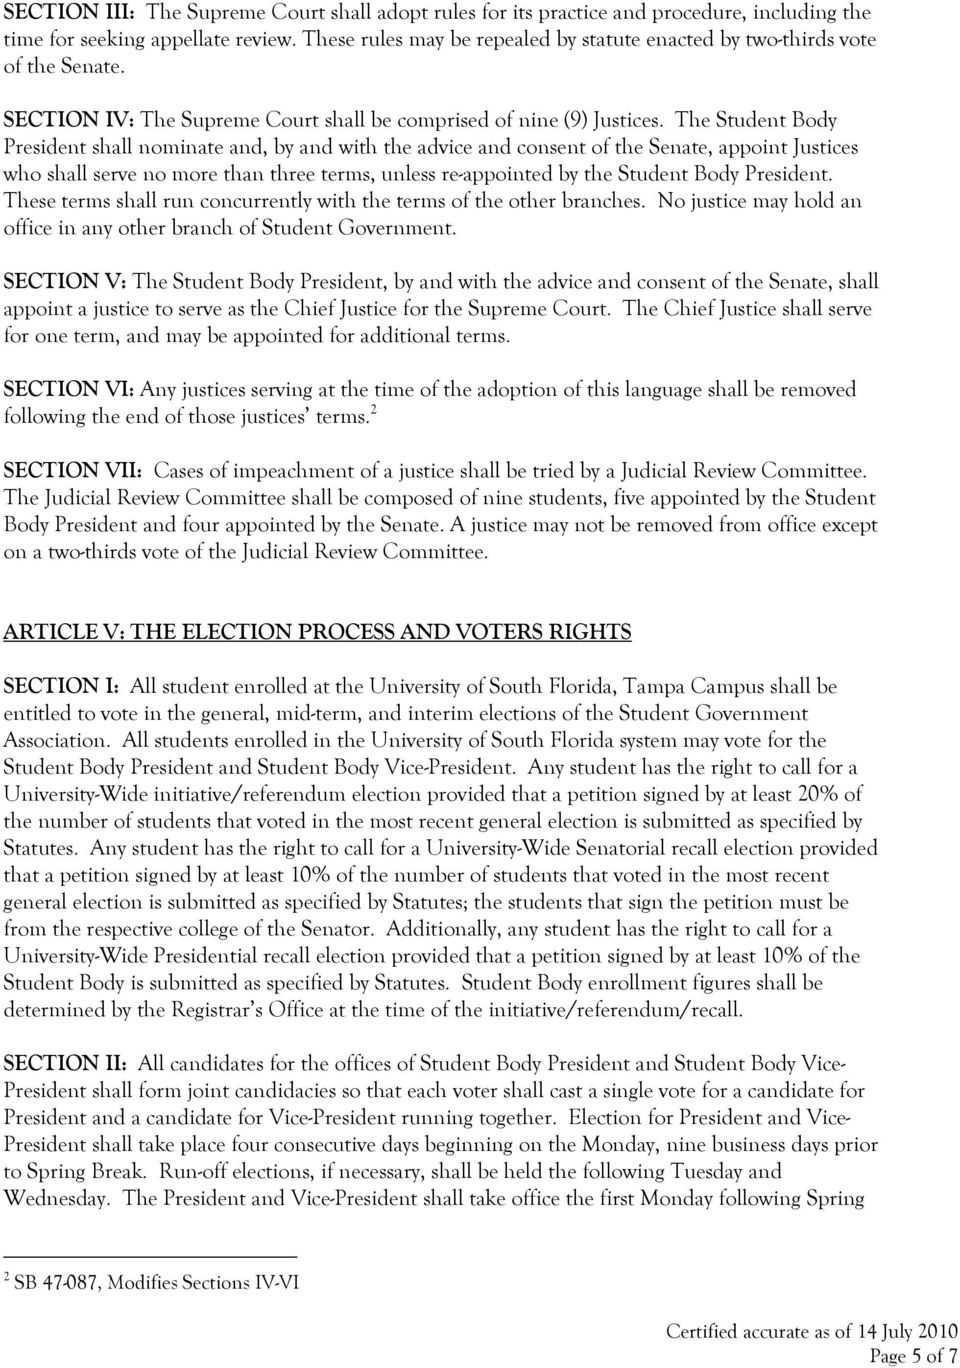 The Student Body President shall nominate and, by and with the advice and consent of the Senate, appoint Justices who shall serve no more than three terms, unless re-appointed by the Student Body